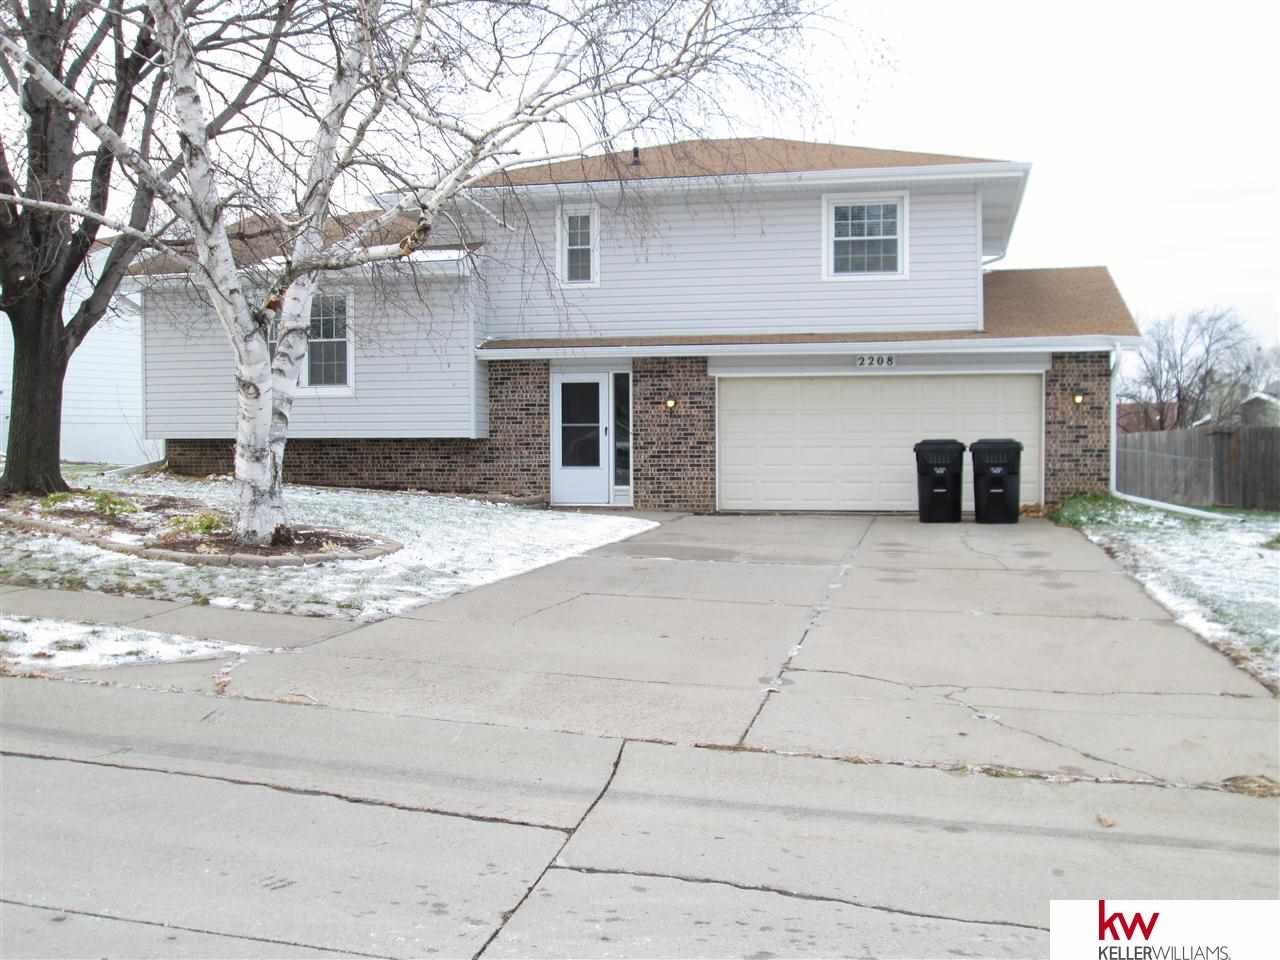 Rental Homes for Rent, ListingId:30647395, location: 2208 Glenwood Avenue Papillion 68046